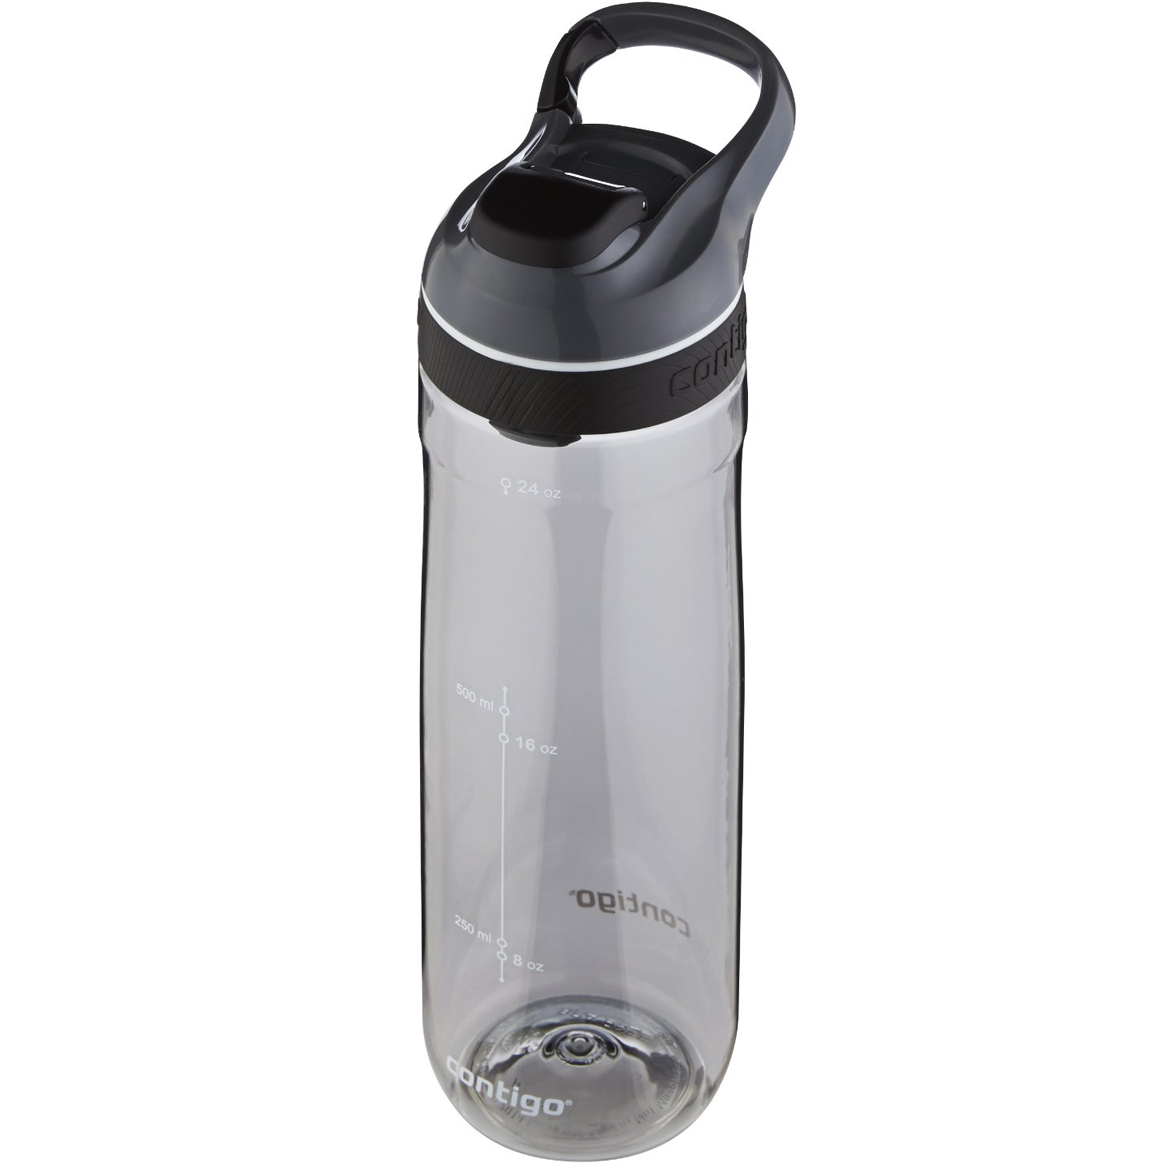 Contigo-24-oz-Cortland-Autoseal-Water-Bottle miniature 15